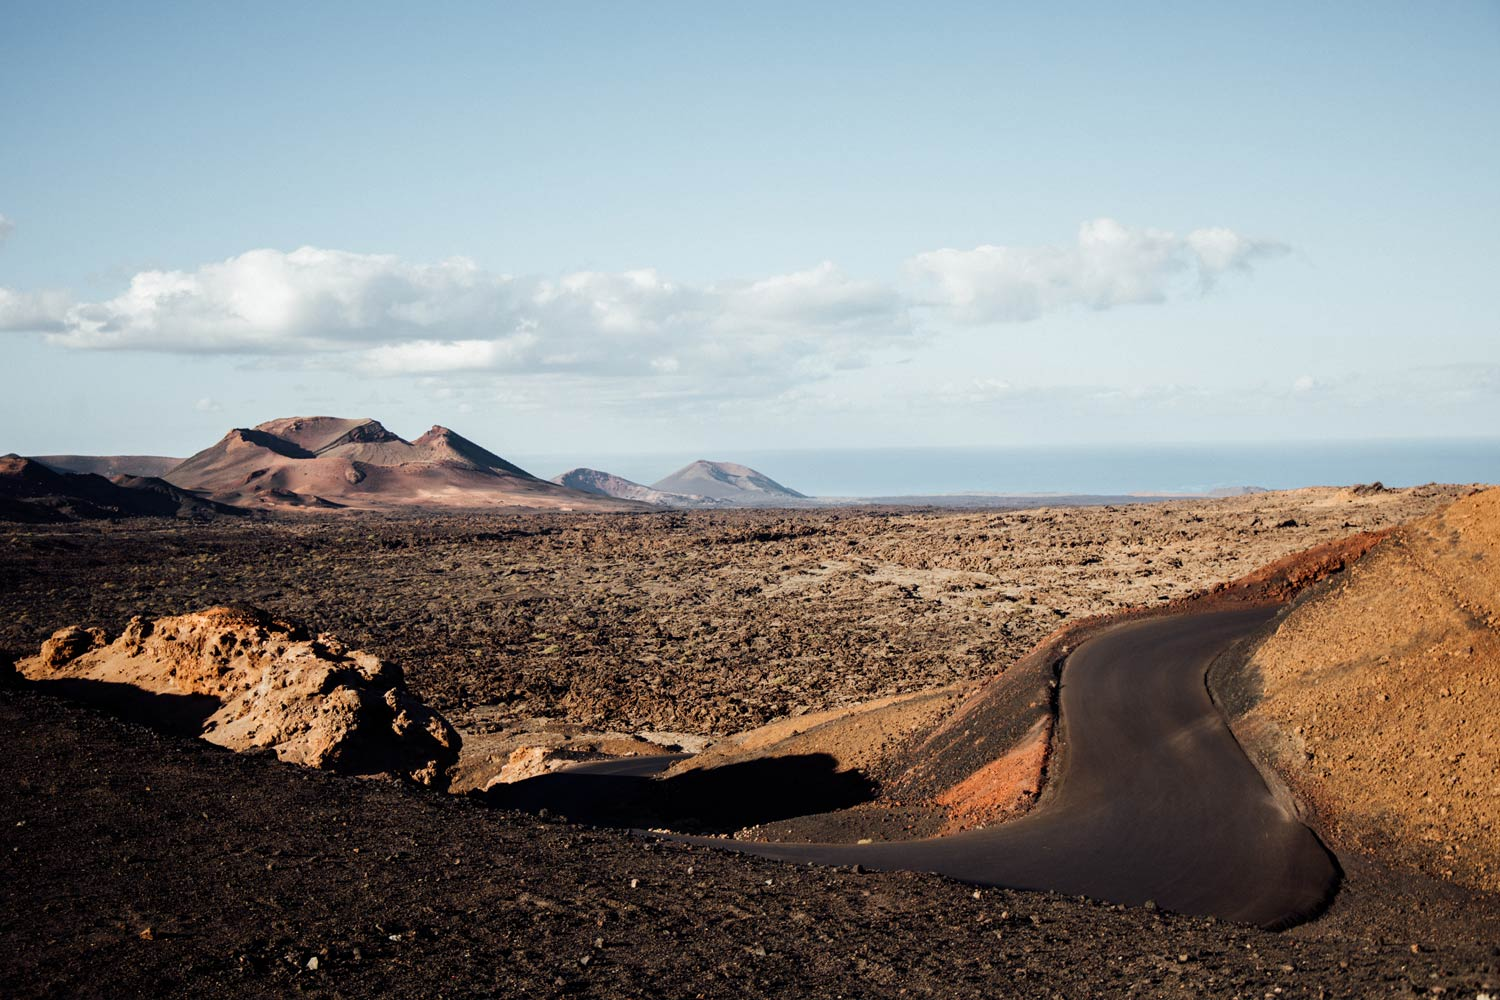 comment voir le parc national de Timanfaya